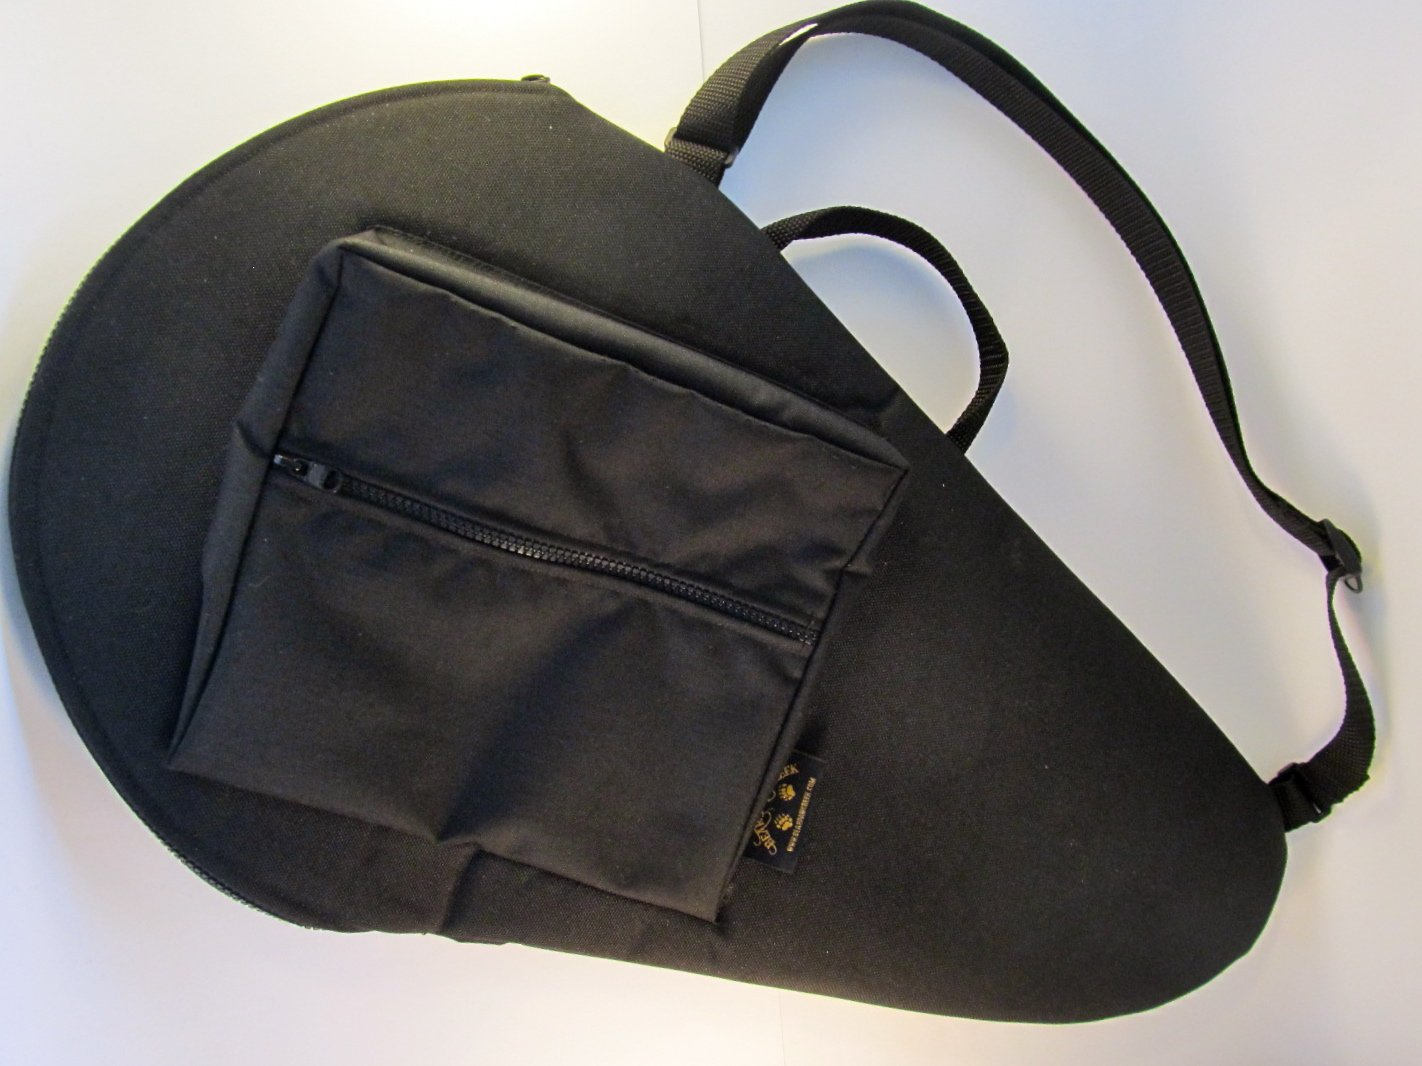 Soft Carrying Bag for Suzuki QChord fits the original Omnichord and Qchord. Direct from USA manufacturer Bear Paw Creek.